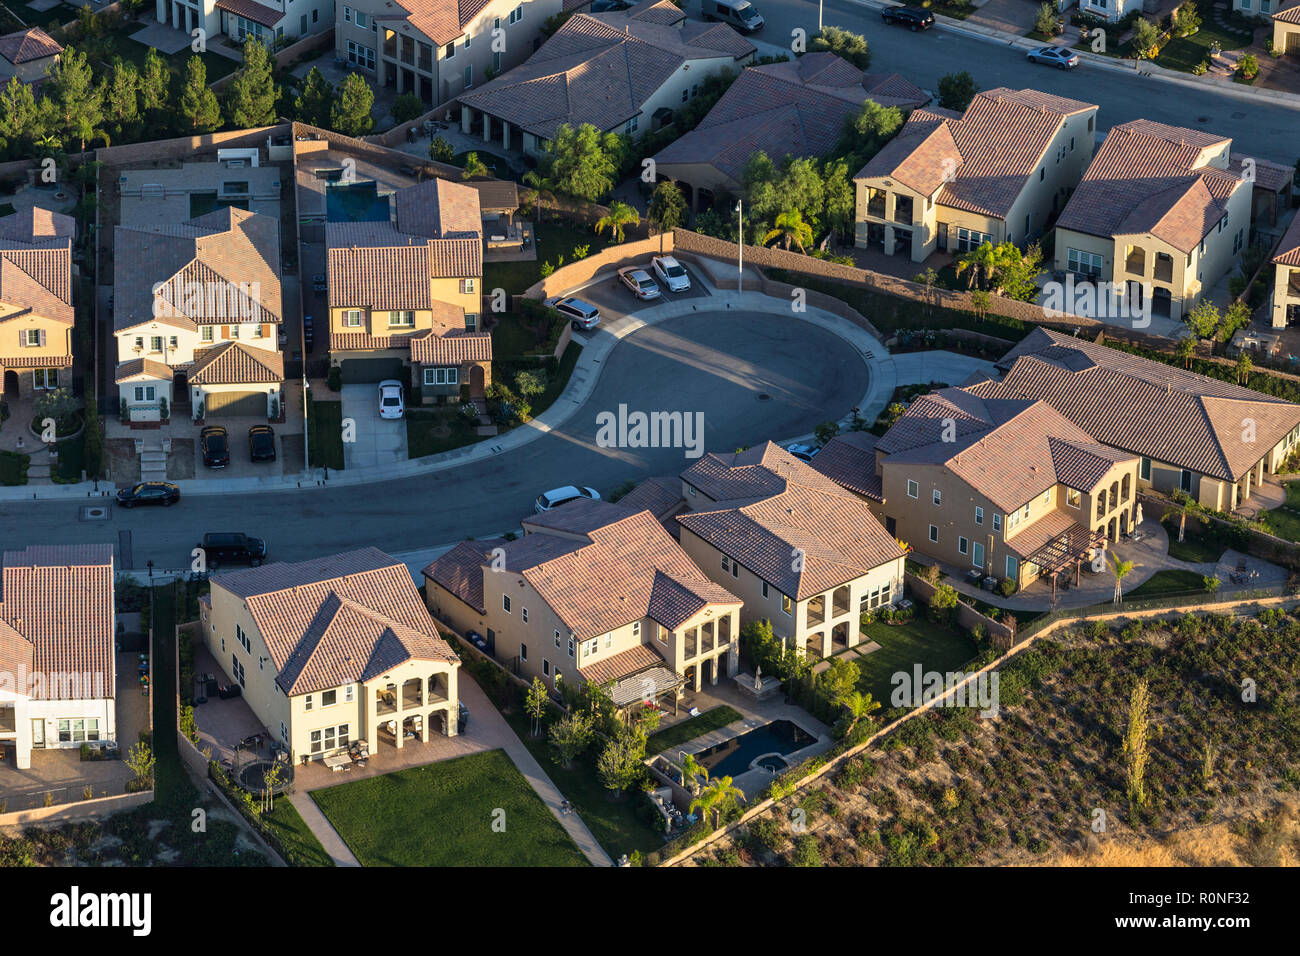 Aerial late afternoon view of suburban cul de sac street in the San Fernando Valley area of Los Angeles, California. Stock Photo